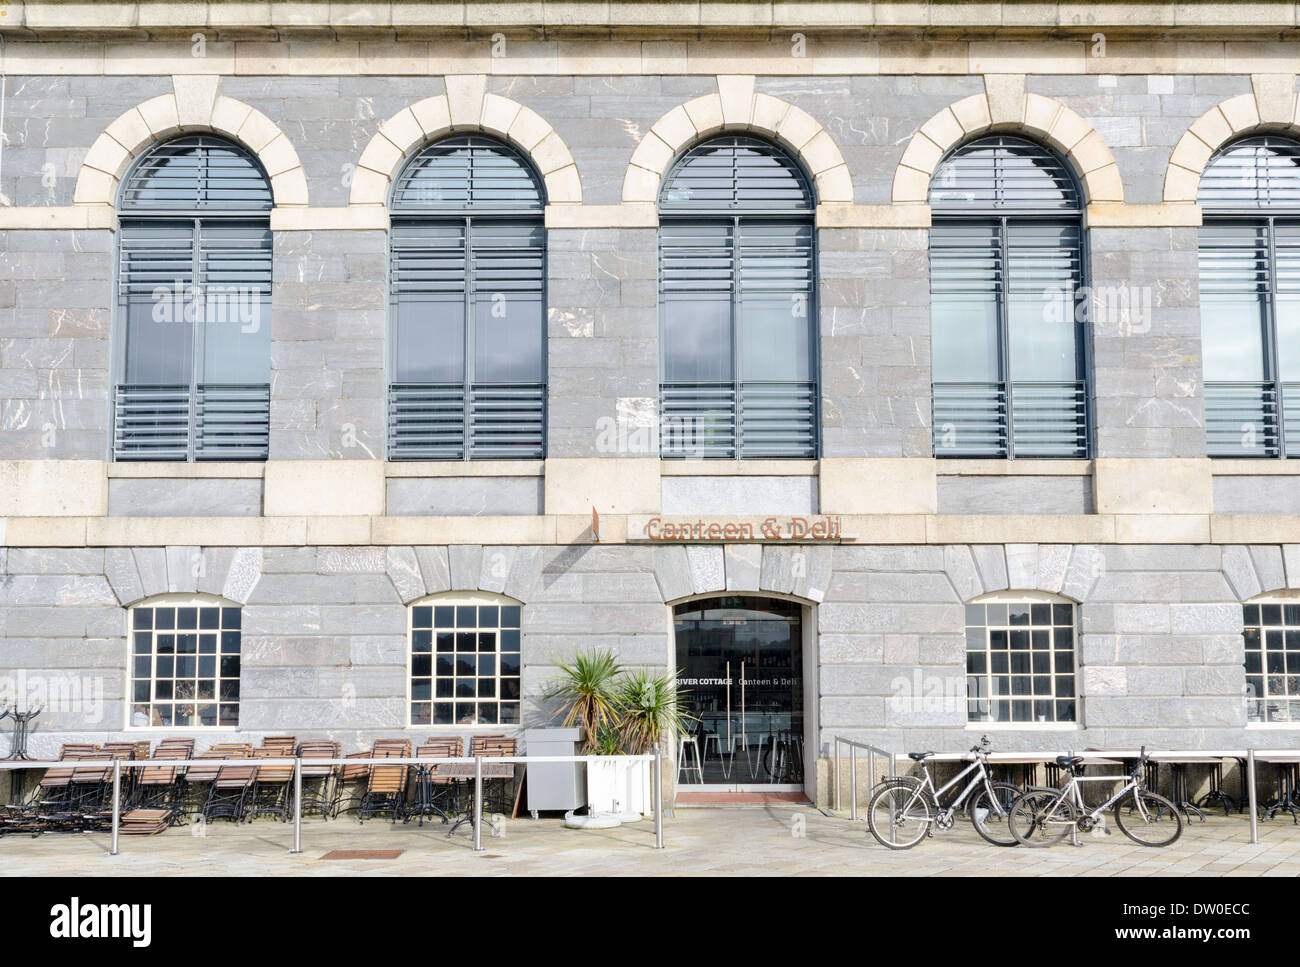 River Cottage Canteen At Royal William Yard In Plymouth Stock Photo Alamy